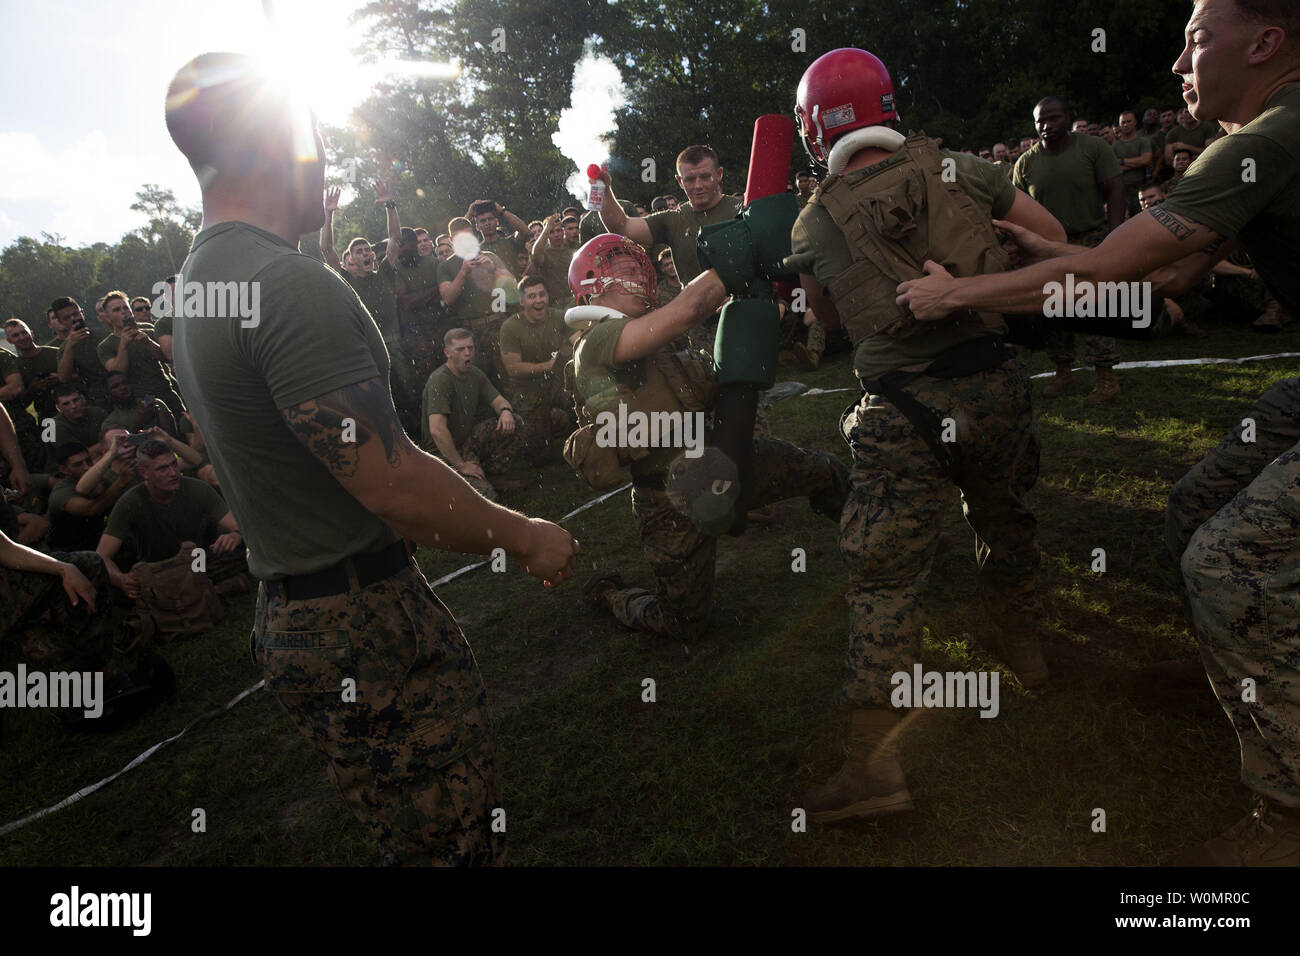 Marines and sailors with Battalion Landing Team, 3rd Battalion, 6th Marine Regiment, participated in a Tuefel Hunden, or Devil Dog, challenge August 12, 2016, on Camp Lejeune N. C. Companies competed against each other in sprint relays, pugil stick fighting, a pull-up and push-up competition, ground fighting and a high-intensity tactical training course. The field meet was organized to build camaraderie among the Marines and sailors. BLT 3/6 is a part of the 24th Marine Expeditionary Unit. Photo by Matthew Callahan/U.S. Marine Corps/UPI Stock Photo